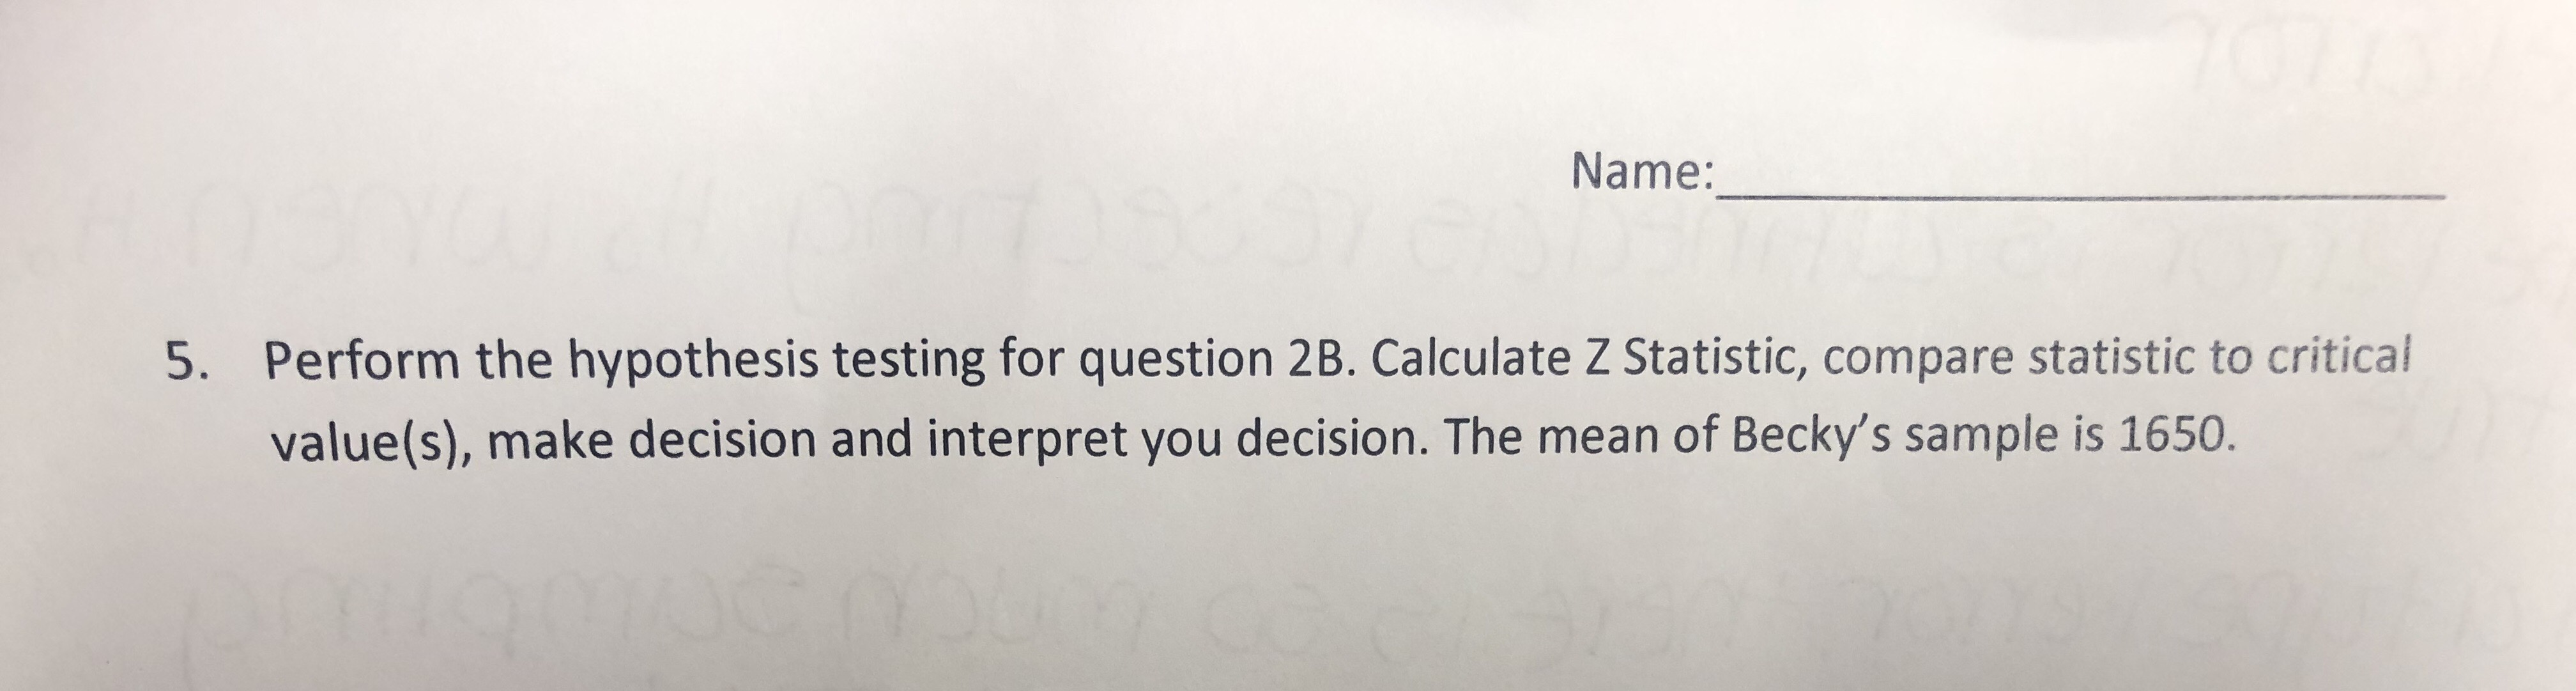 Name: Perform the hypothesis testing for question 2B. Calculate Z Statistic, compare statistic to critical 5. value(s), make decision and interpret you decision. The mean of Becky's sample is 1650.